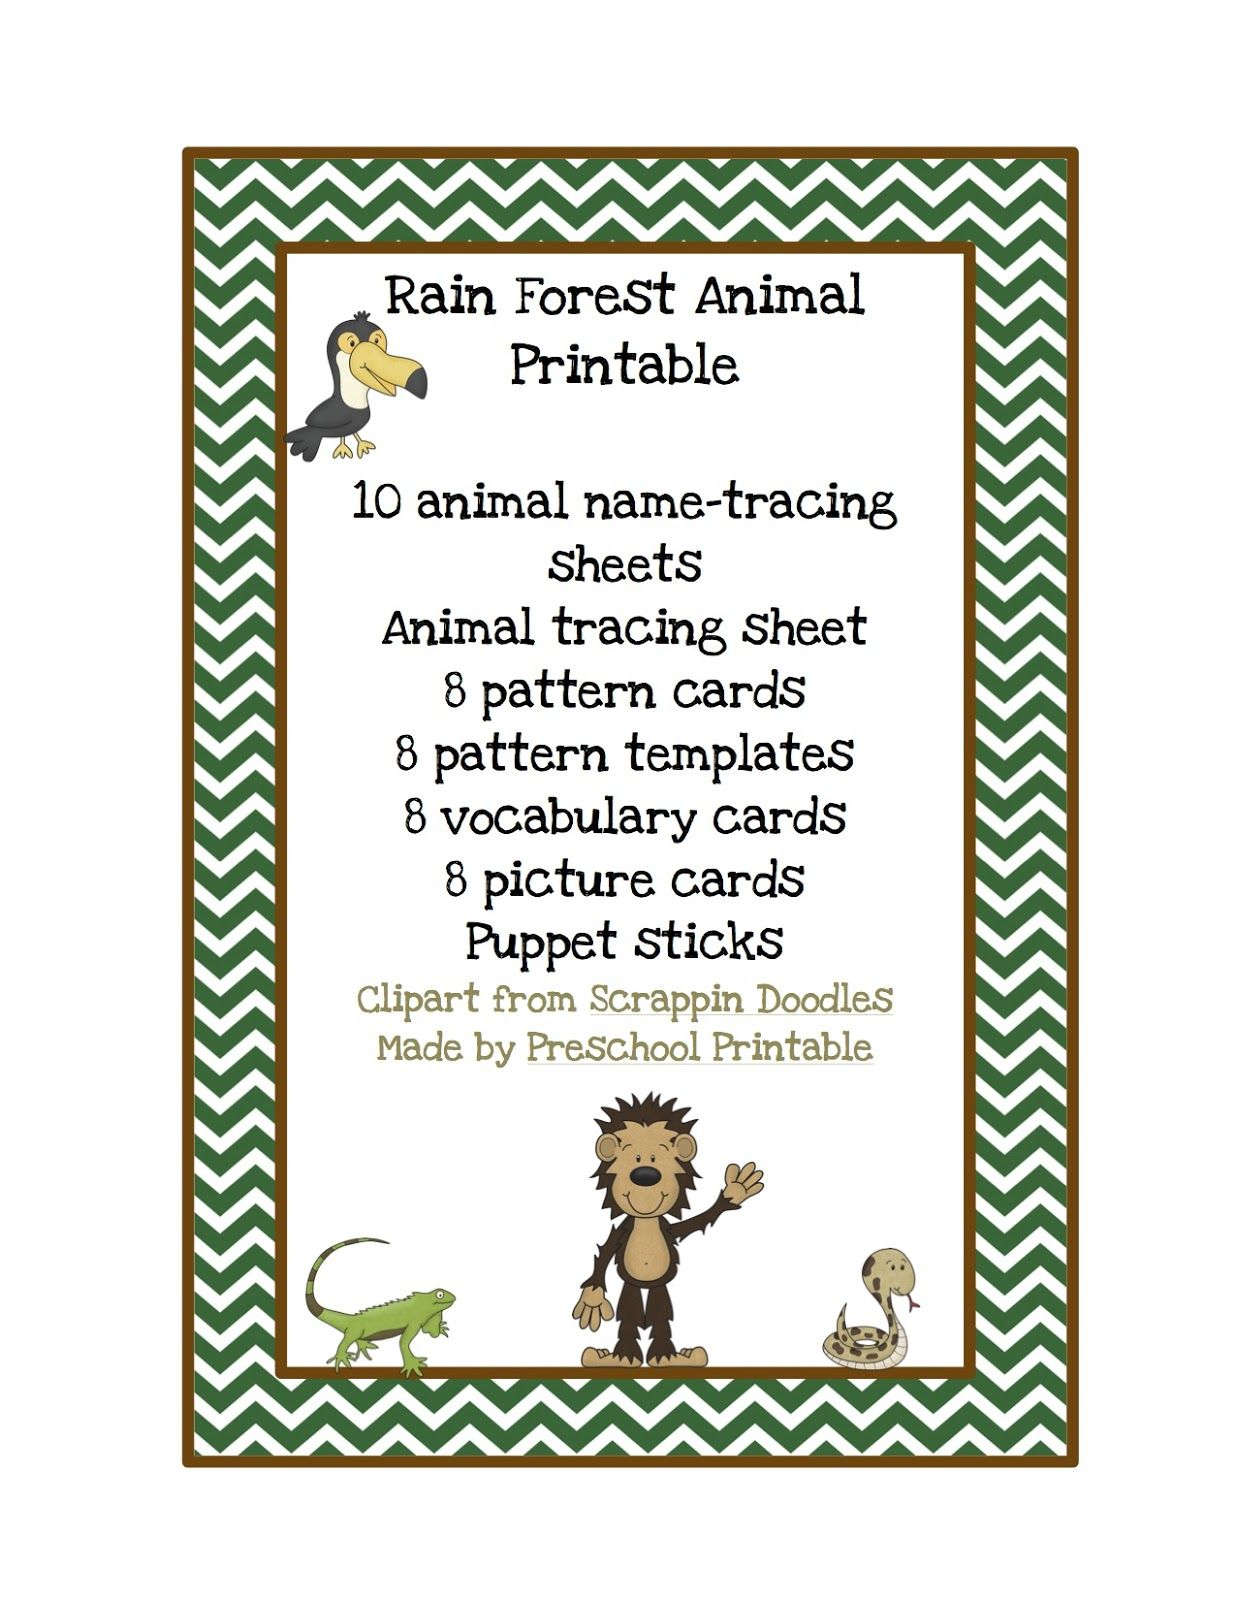 Preschool Printables Rain Forest Animal Printable